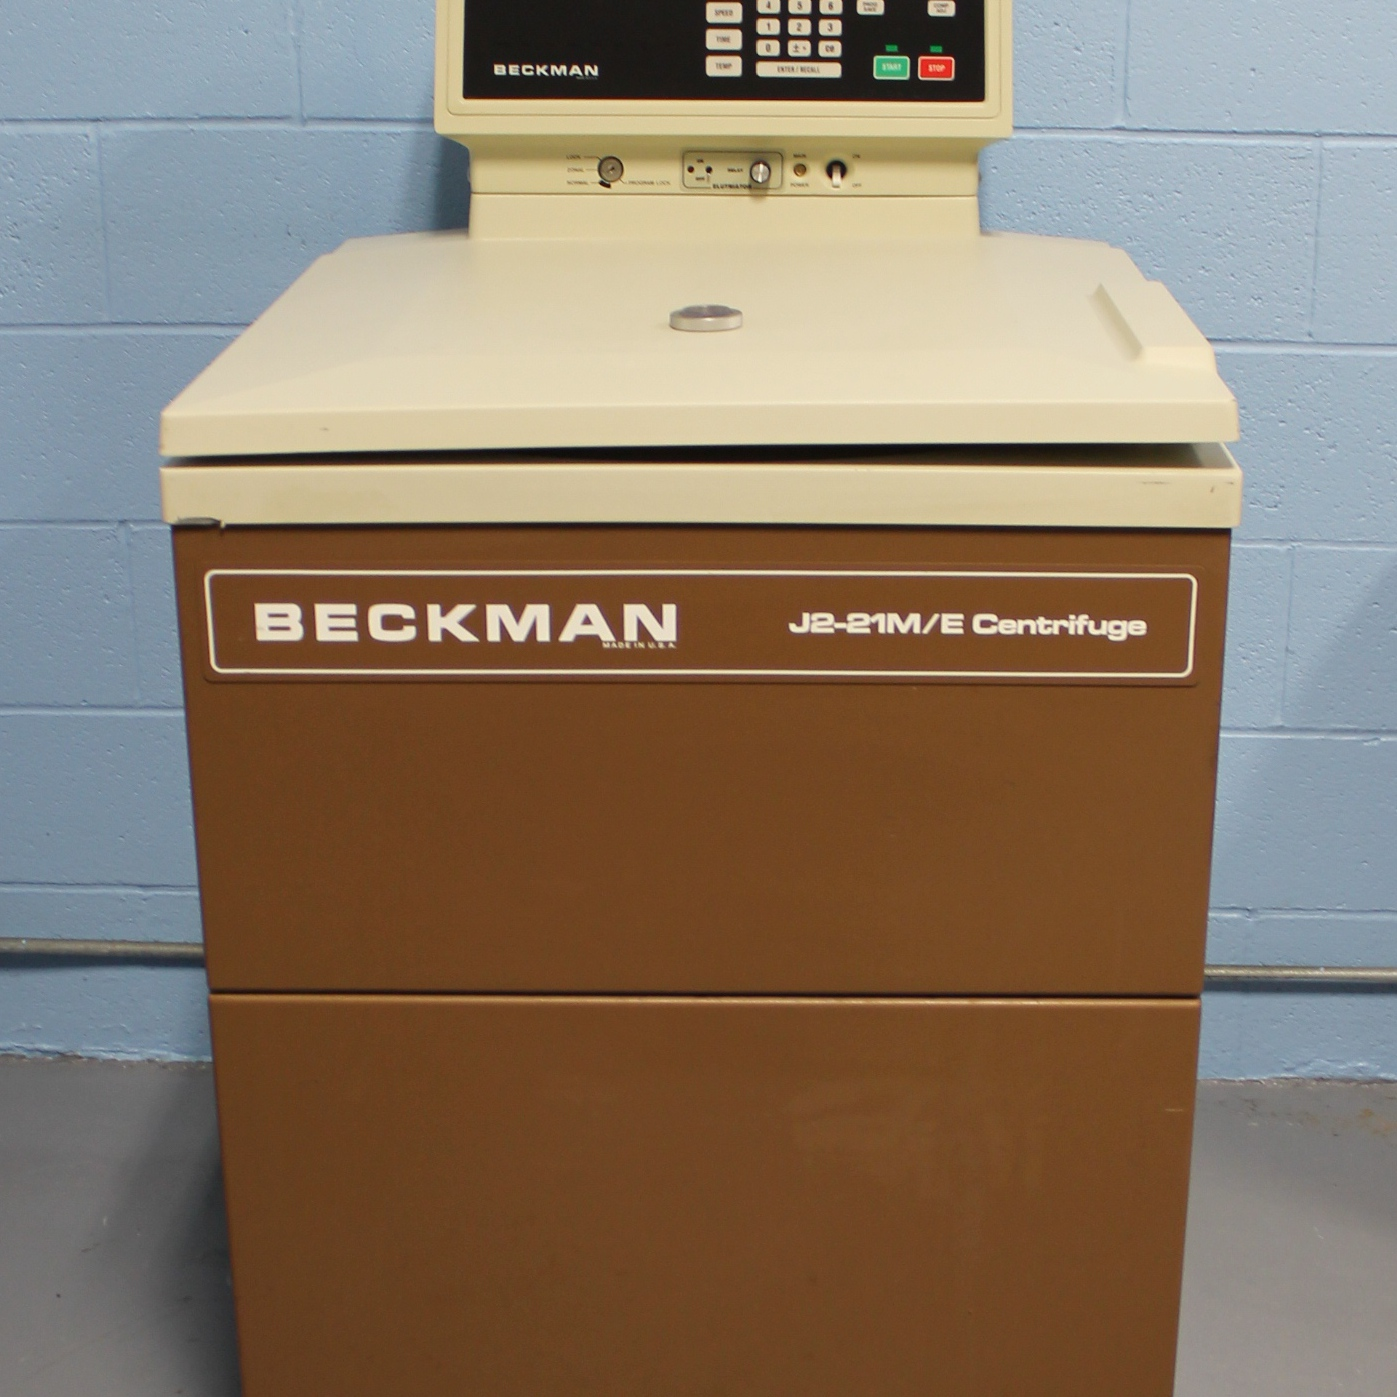 Beckman J2-21 M/E Superspeed Refrigerated Floor Centrifuge with JE-6B Elutriator Rotor Image